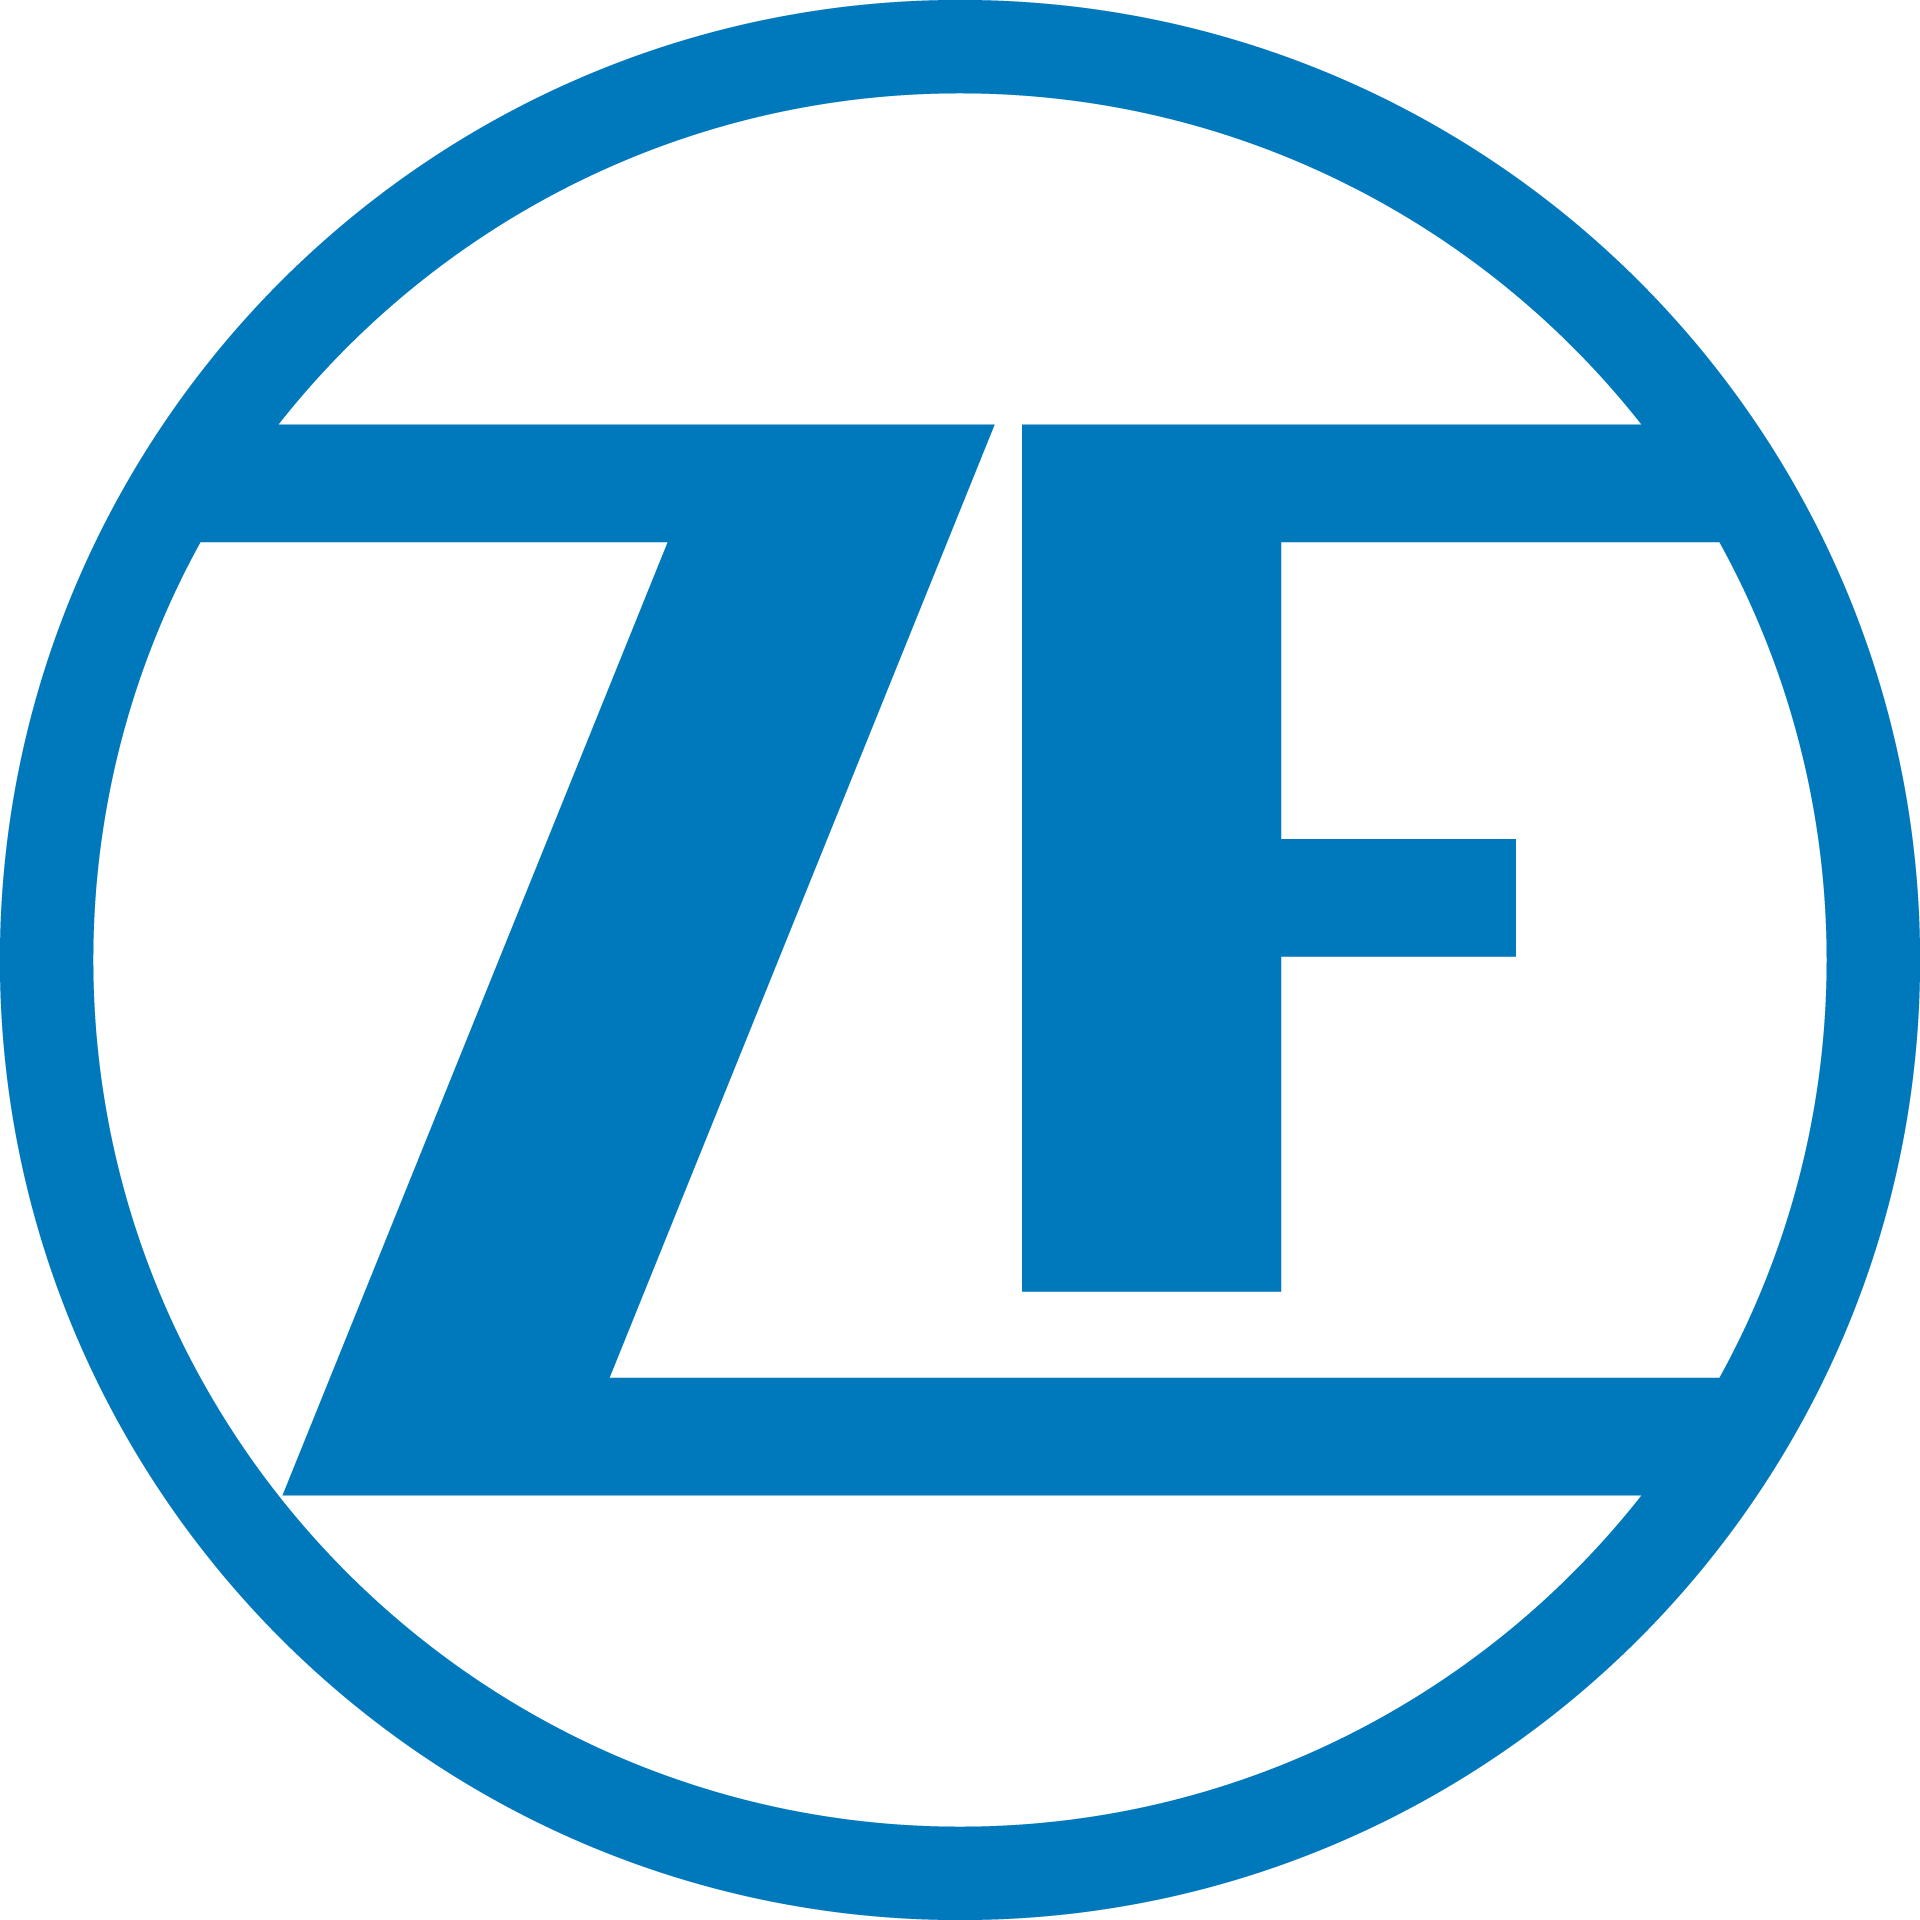 ZF Services GmbH